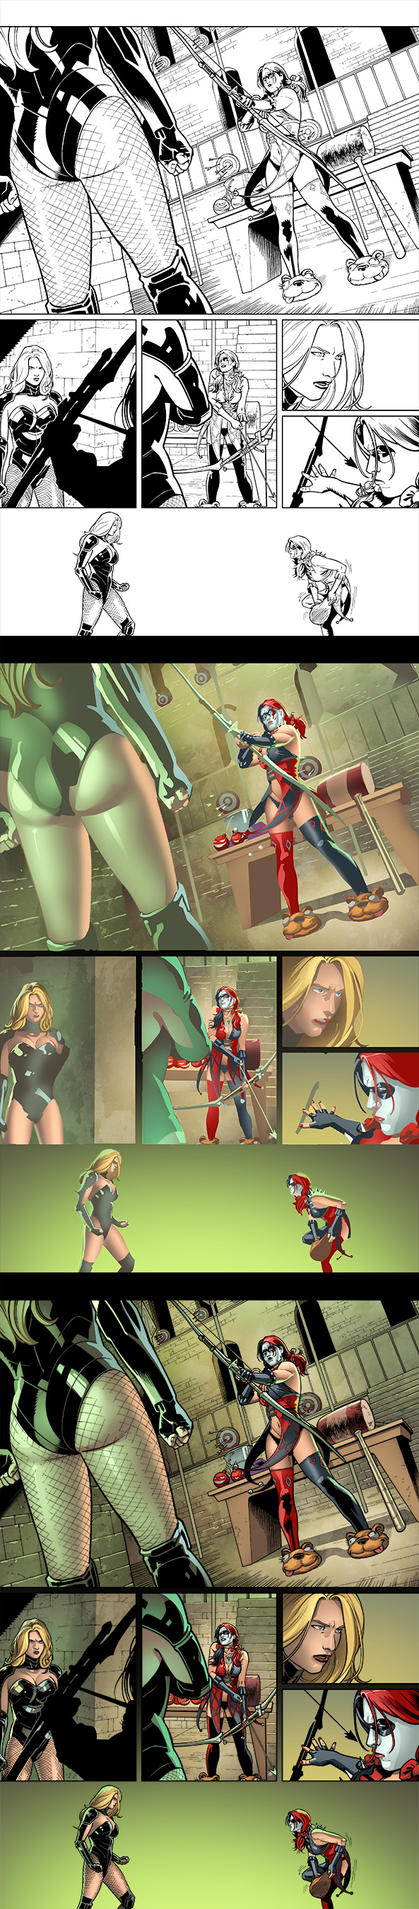 Injustice: Gods Among Us Y2 Ch13 p2 Process by RexLokus